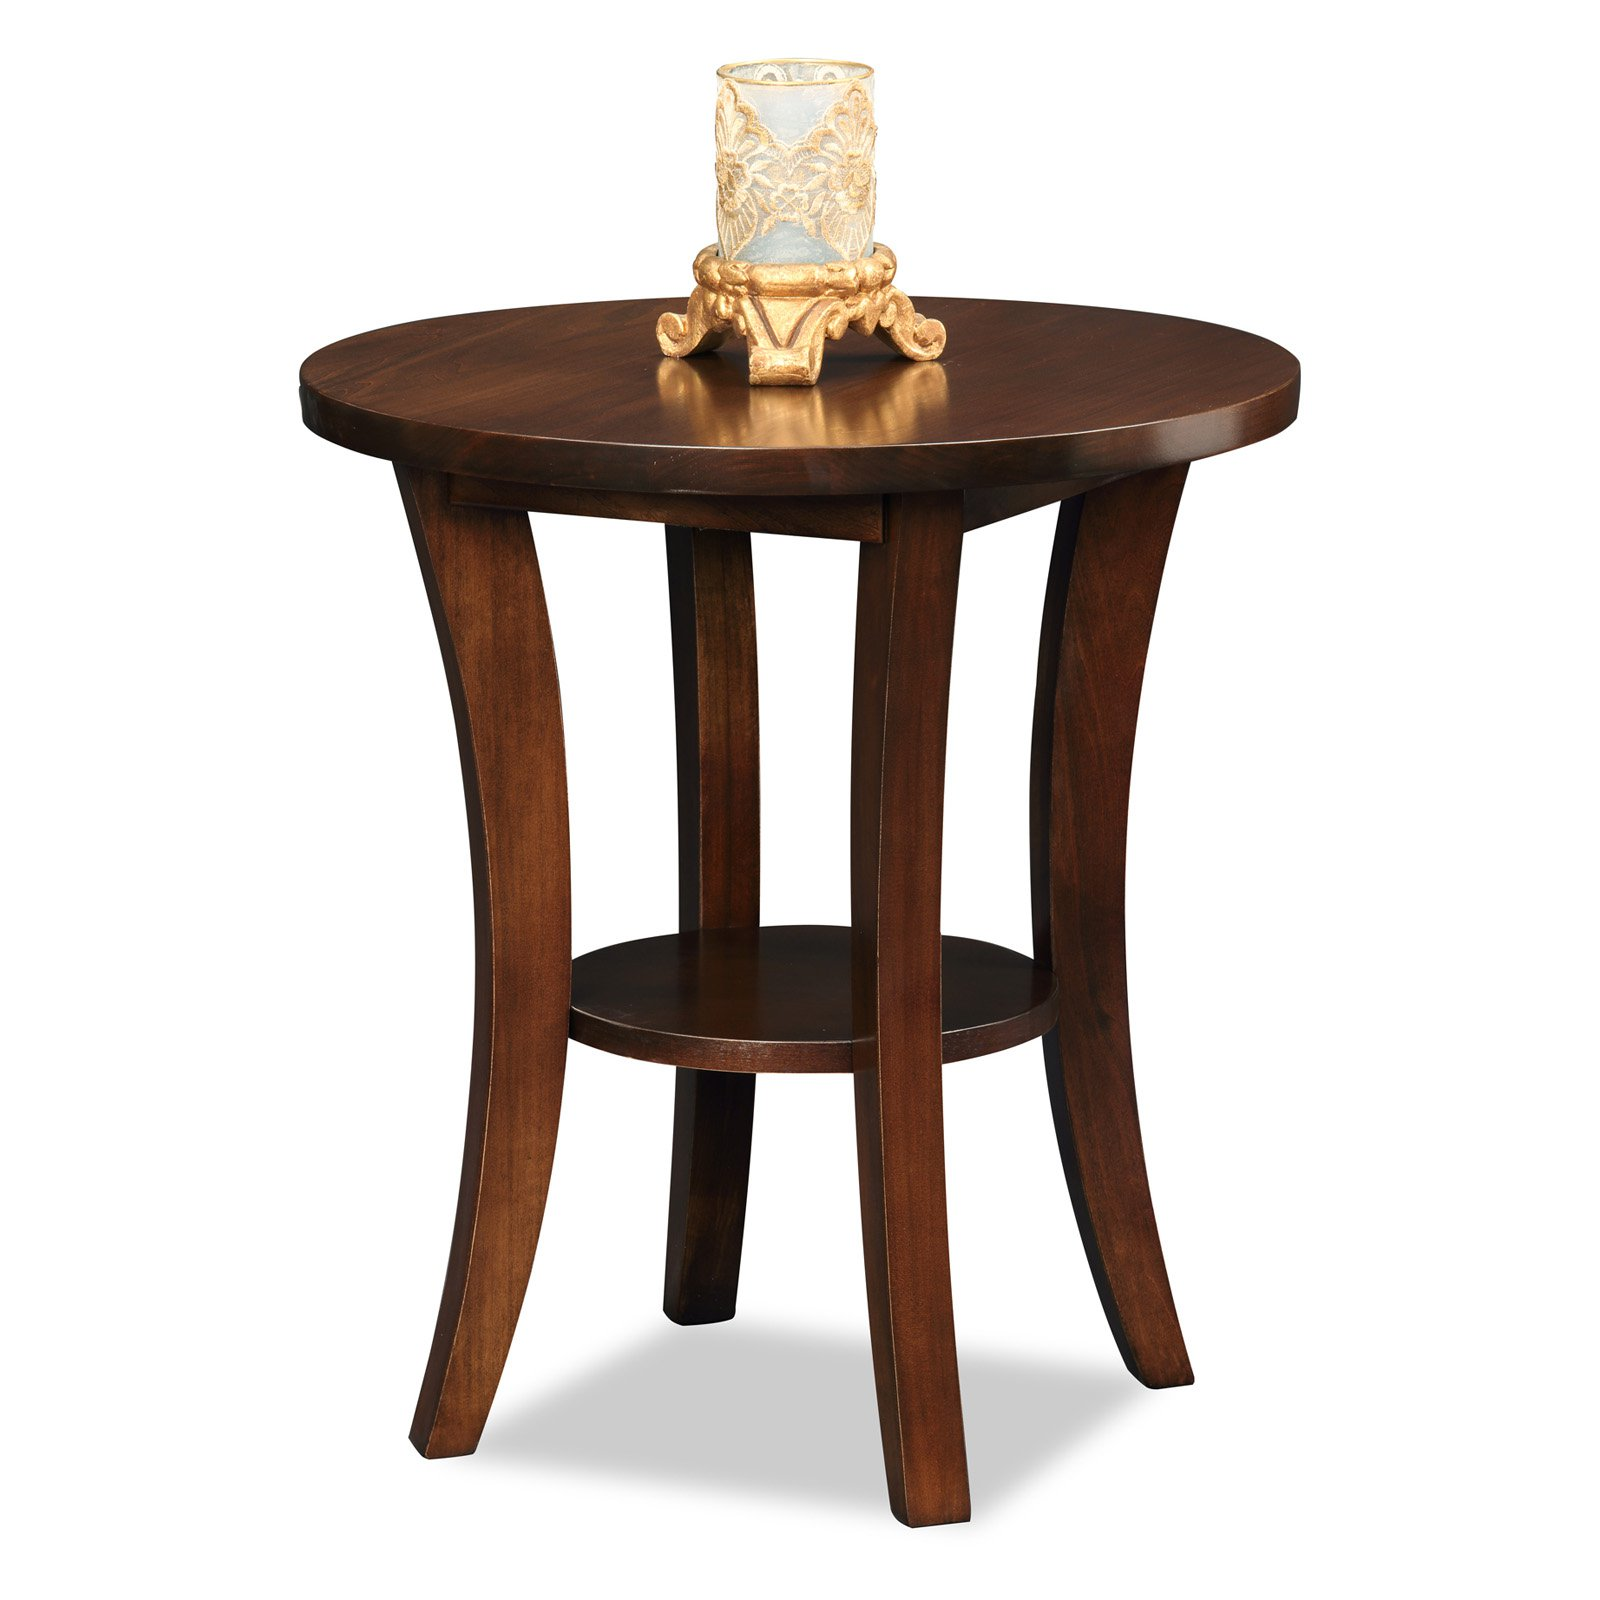 Leick Furniture Boa Round Side Table by Leick Furniture